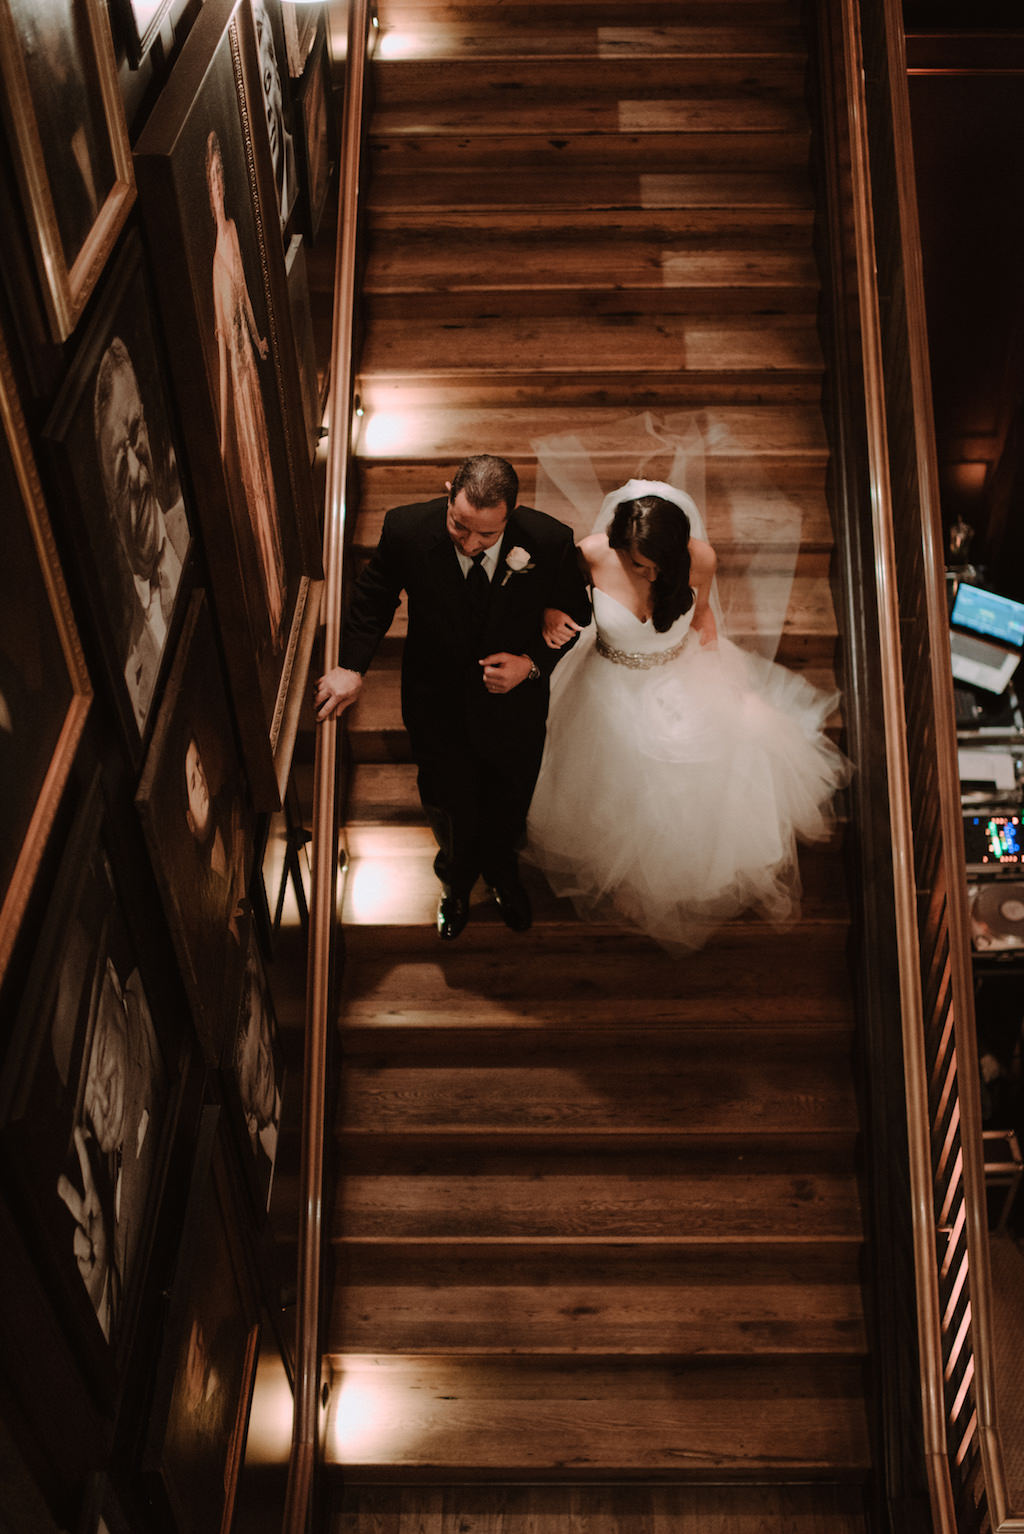 Indoor Wedding Portrait on Staircase, Bride in Sweetheart Strapless Tulle Wedding Dress with Rhinestone Belt and Cathedral Length Tulle Veil, Groom in Black Tuxedo with Black Bowtie and White Rose Boutonniere | South Tampa Historic Wedding Venue The Oxford Exchange | Bridal Shop The Bride Tampa